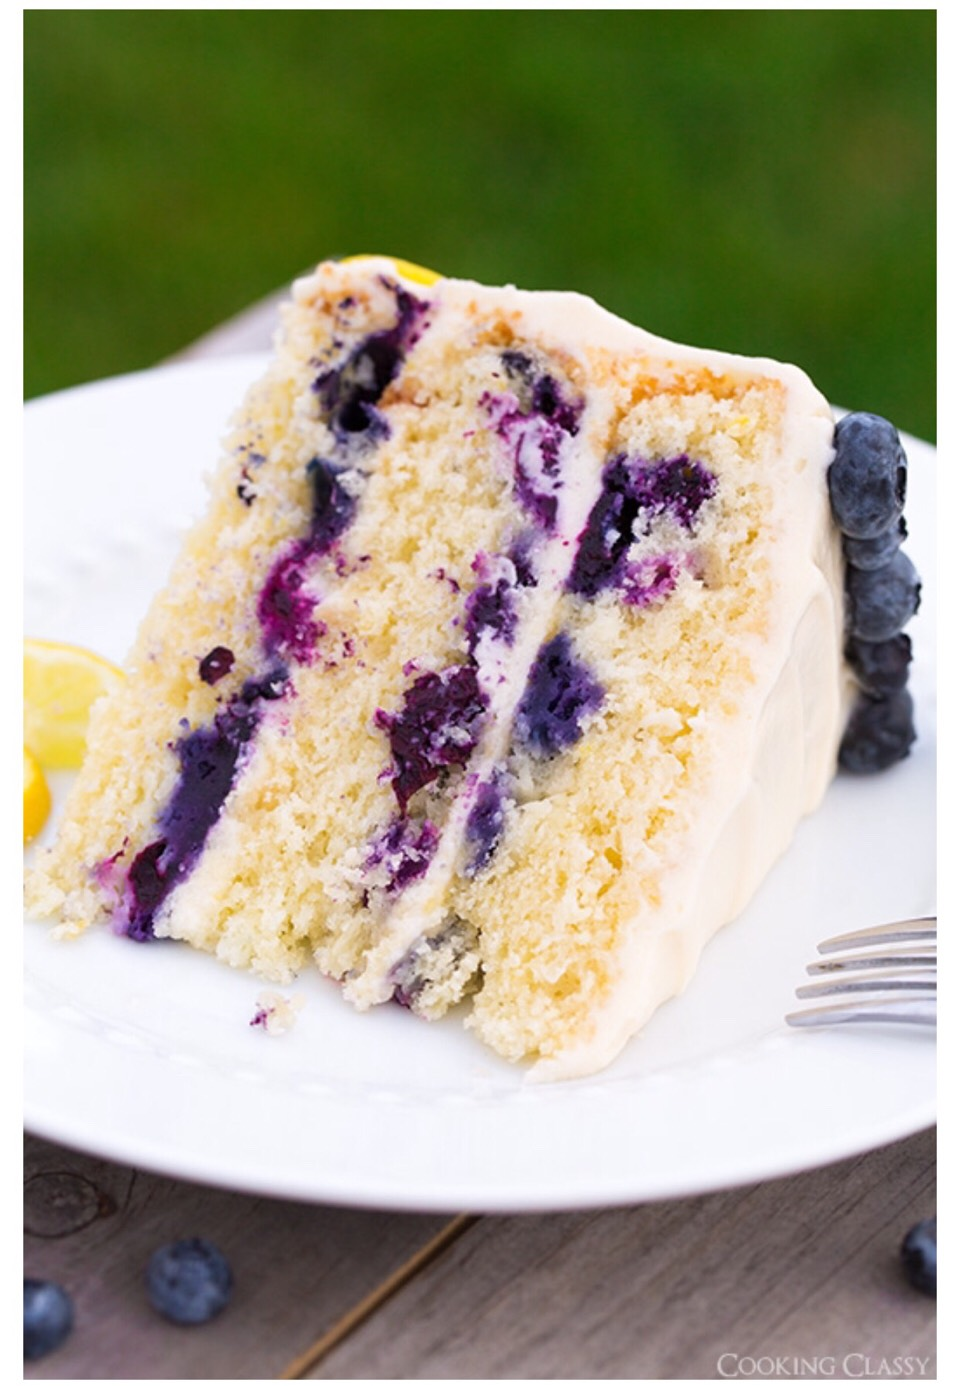 Blueberry Layer Cake With Cream Cheese Frosting